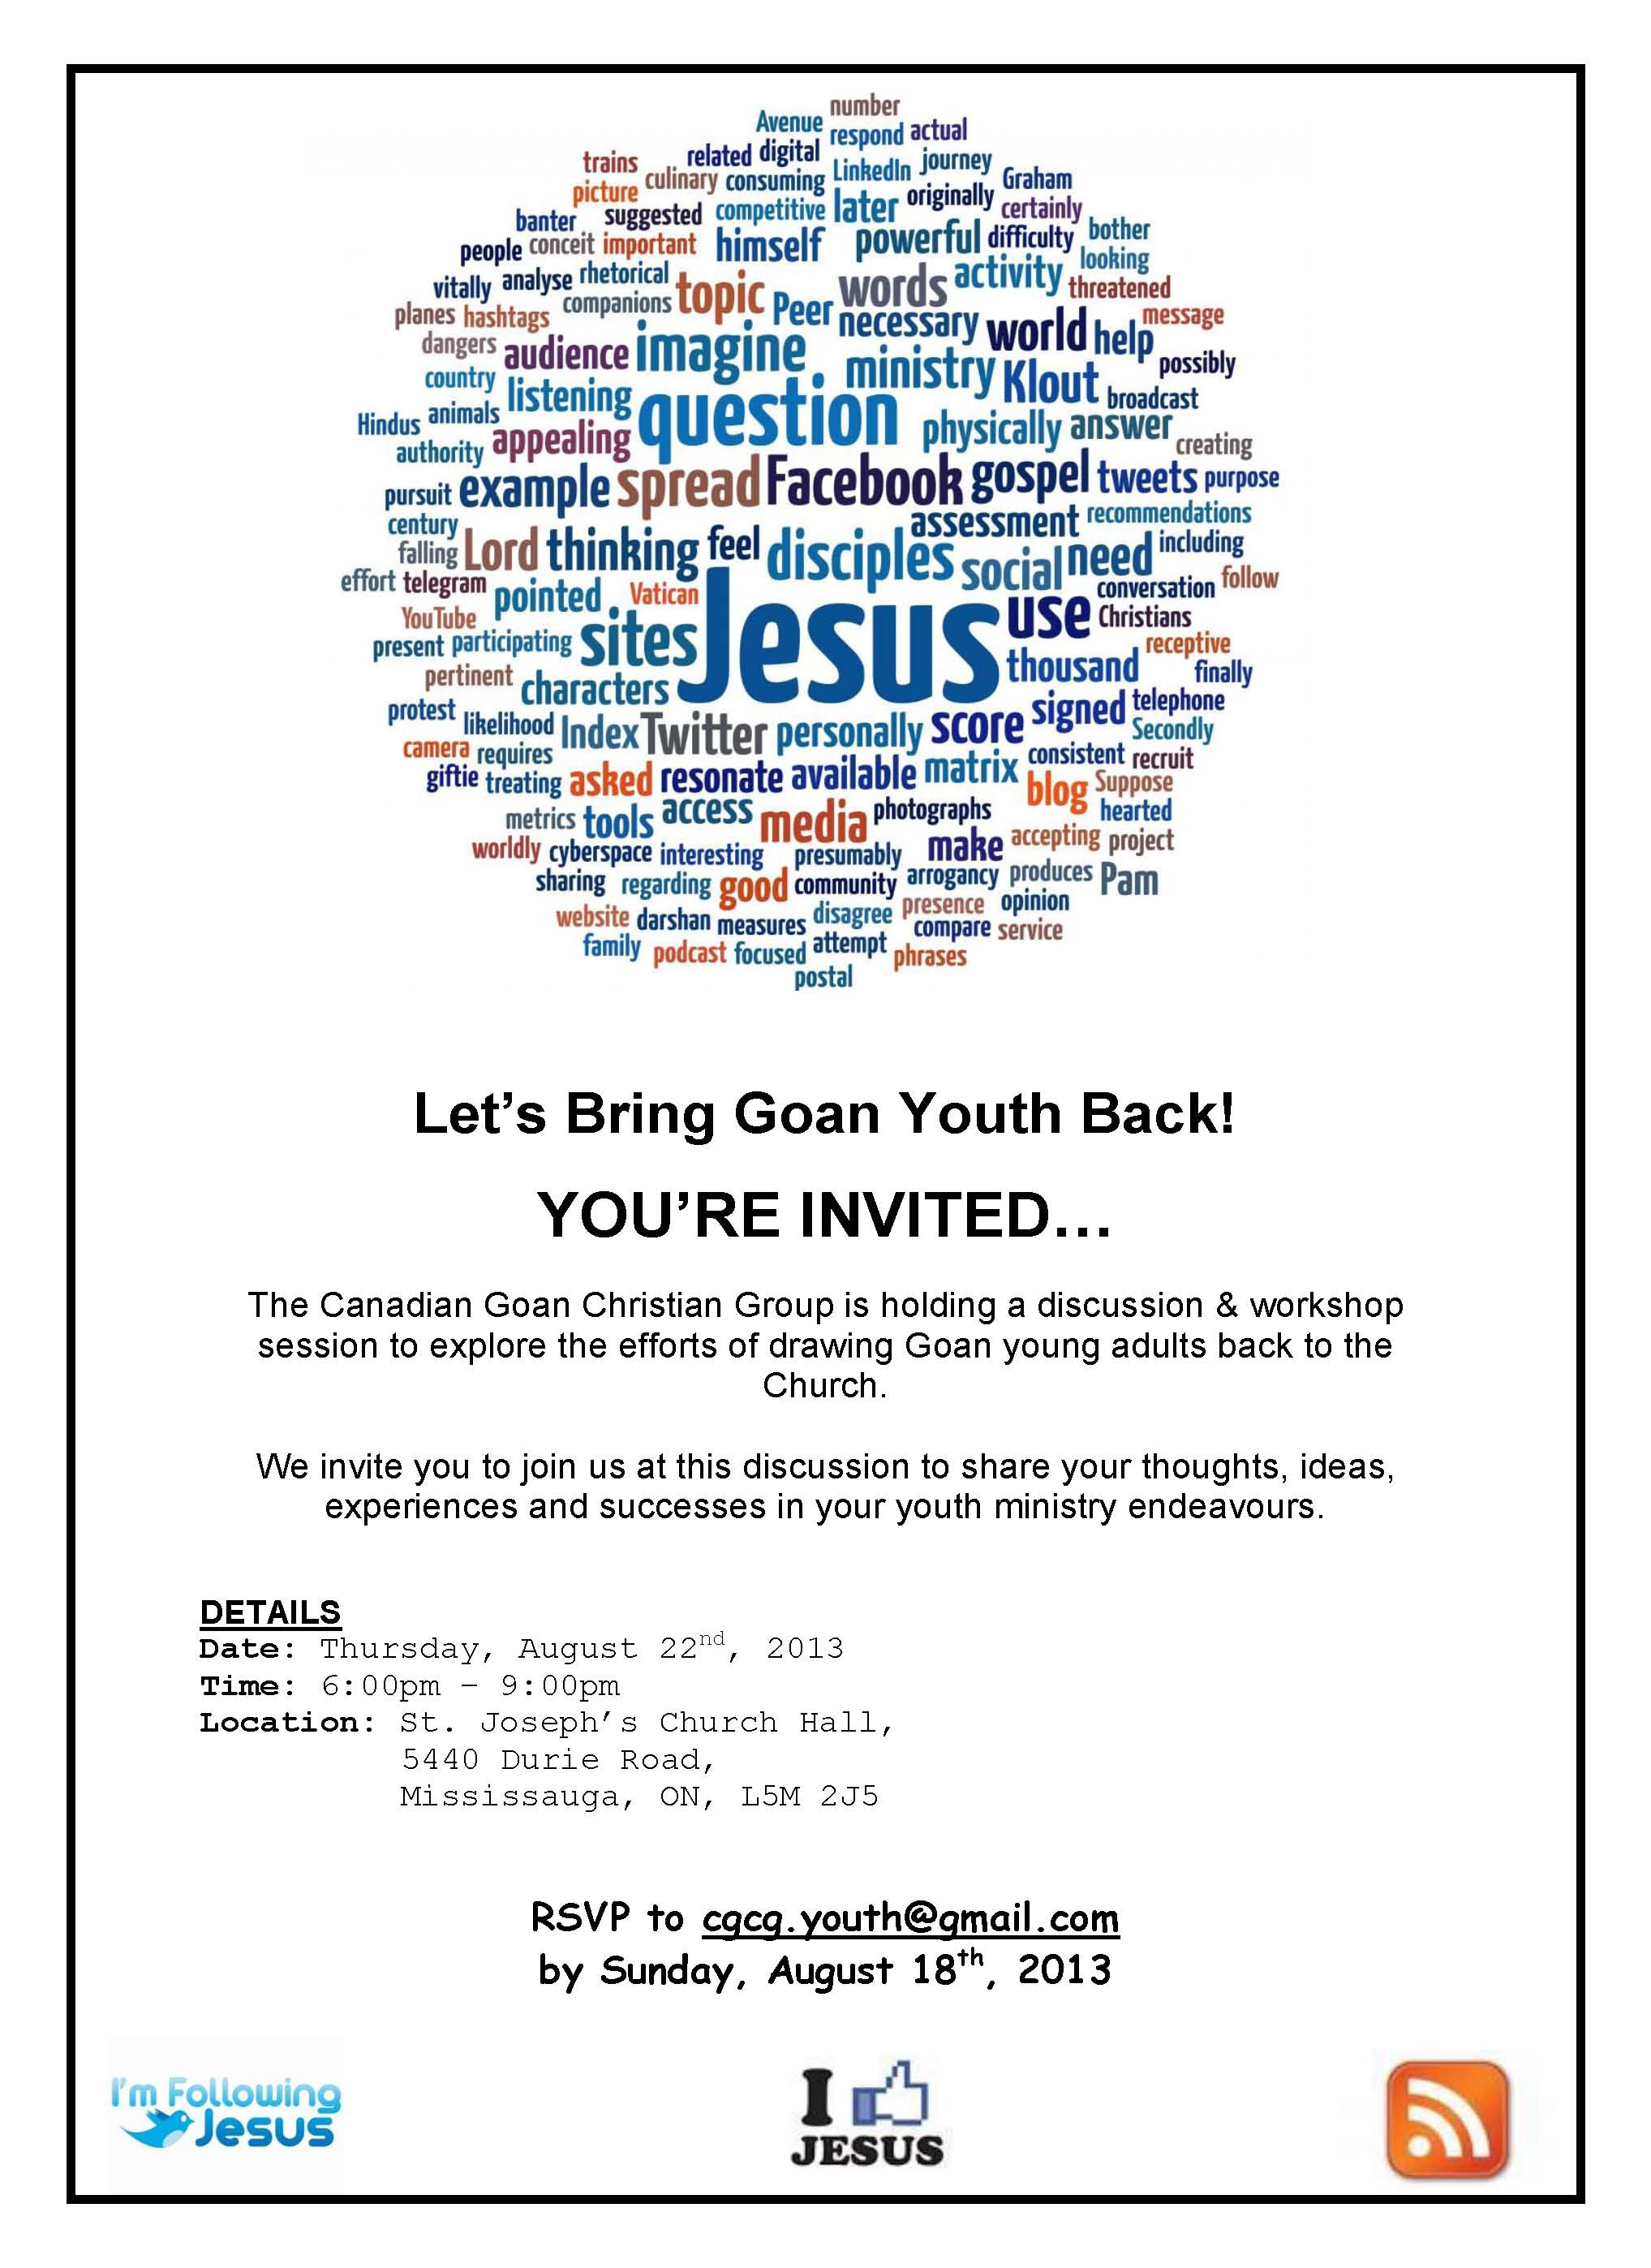 cgcgYouth Flyer